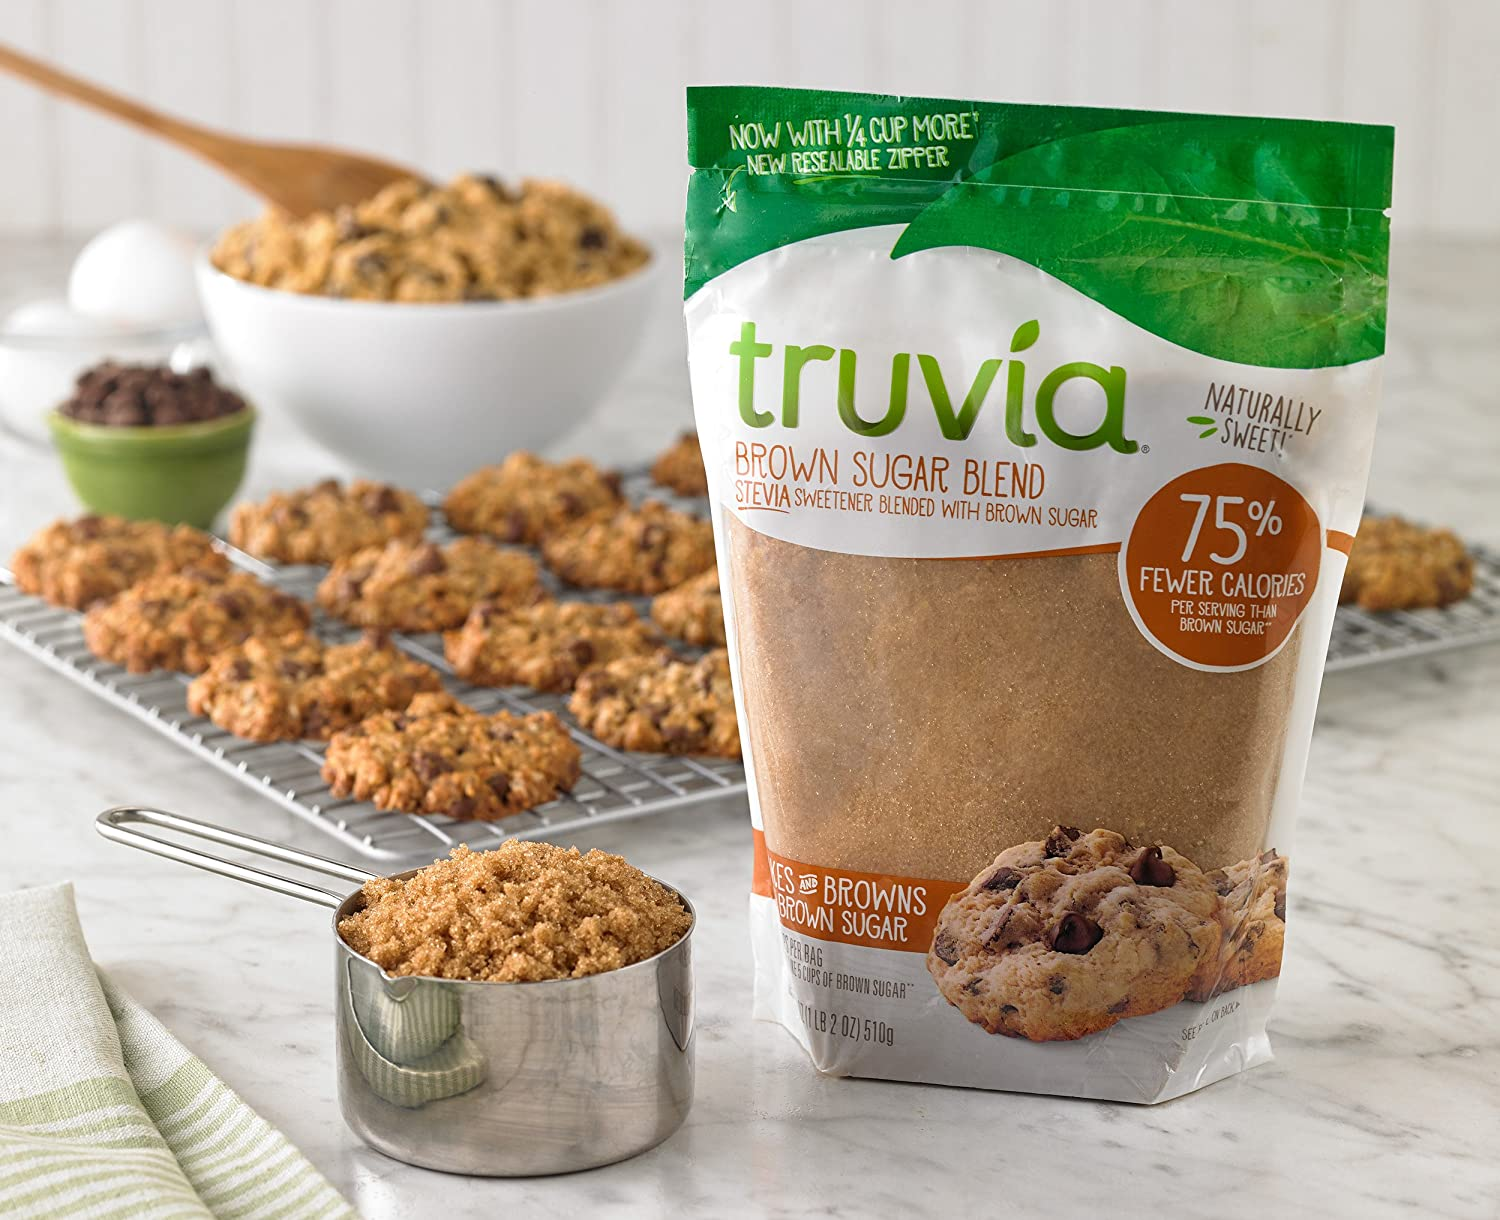 Truvia Brown Sugar Blend Mix Of Natural Stevia Sweetener And Brown Sugar 18 Oz Bag